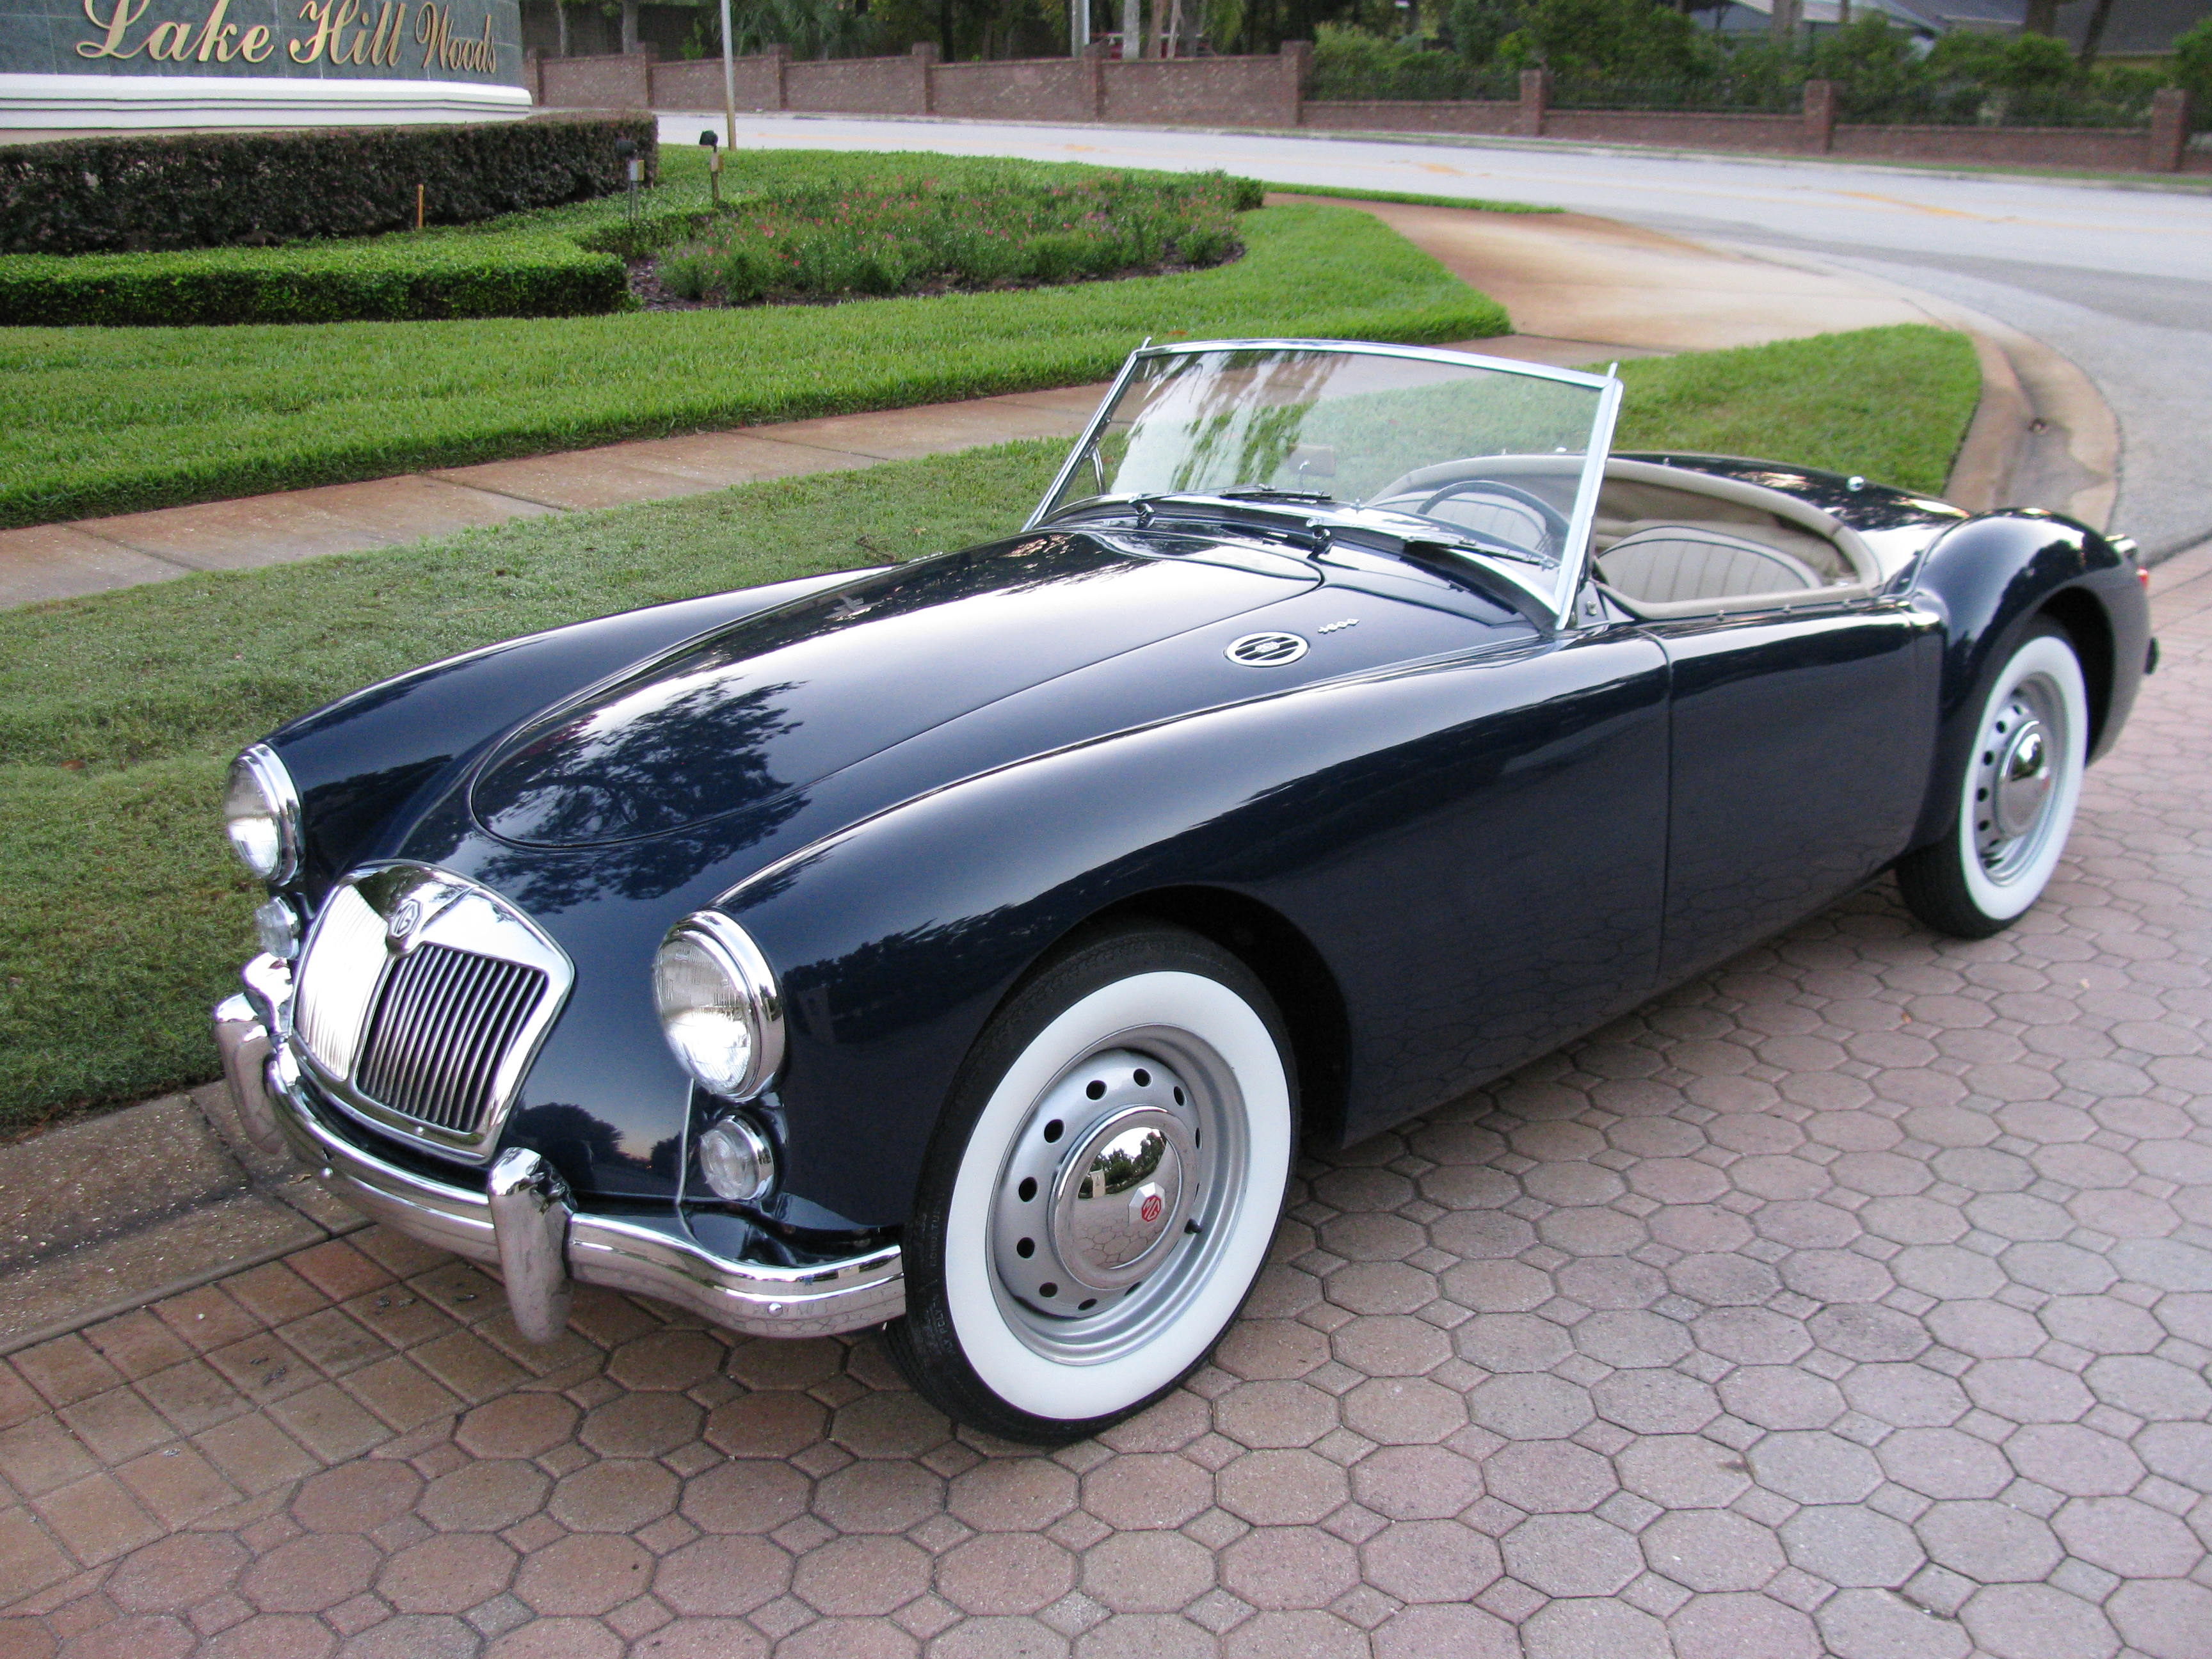 1961 MGA 1600 MKI SOLD Vantage Sports Cars Vantage